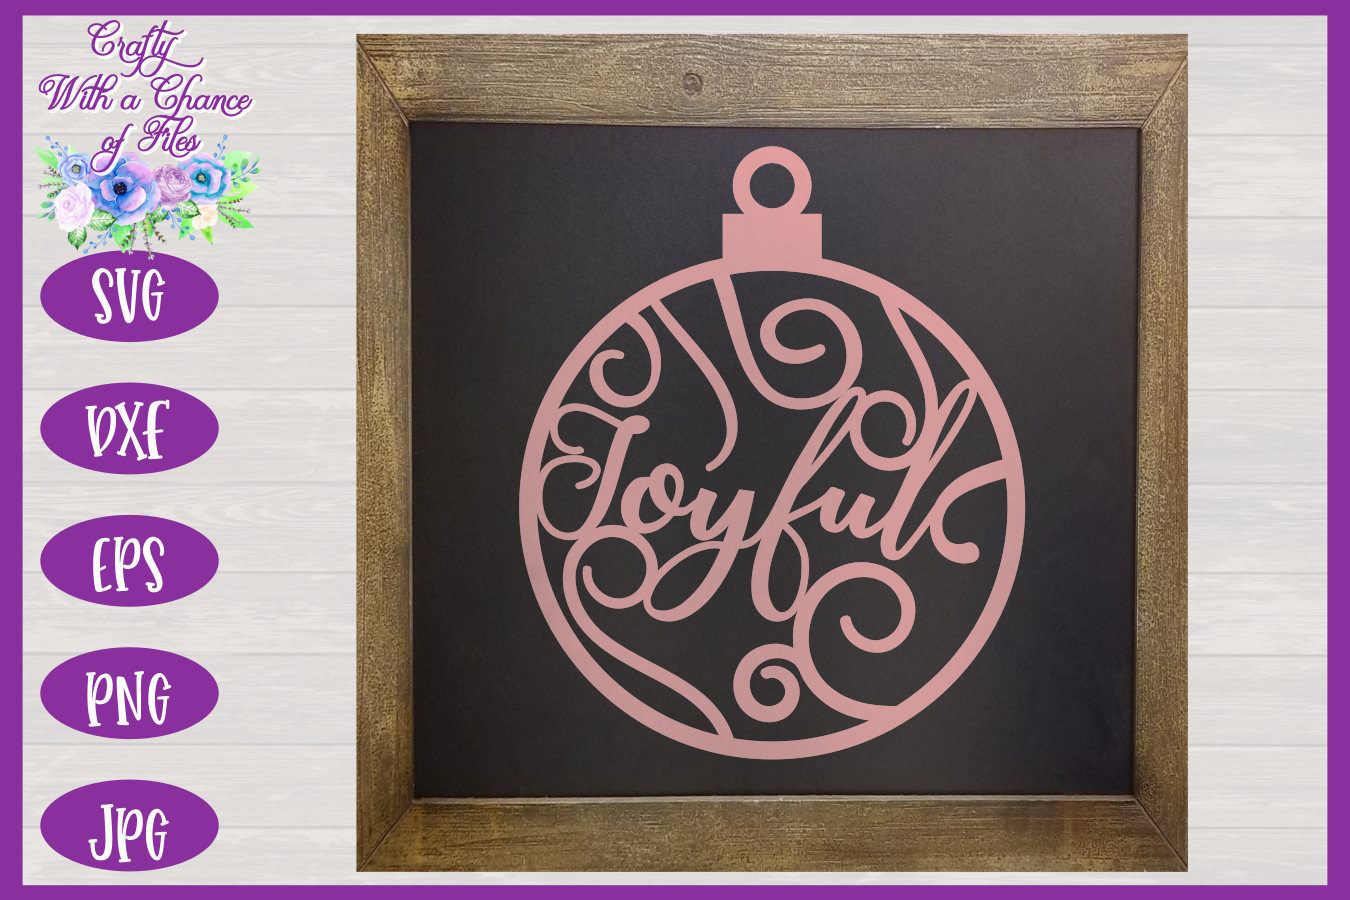 Christmas Word Ornaments SVG | Laser Cut Baubles SVG example image 10